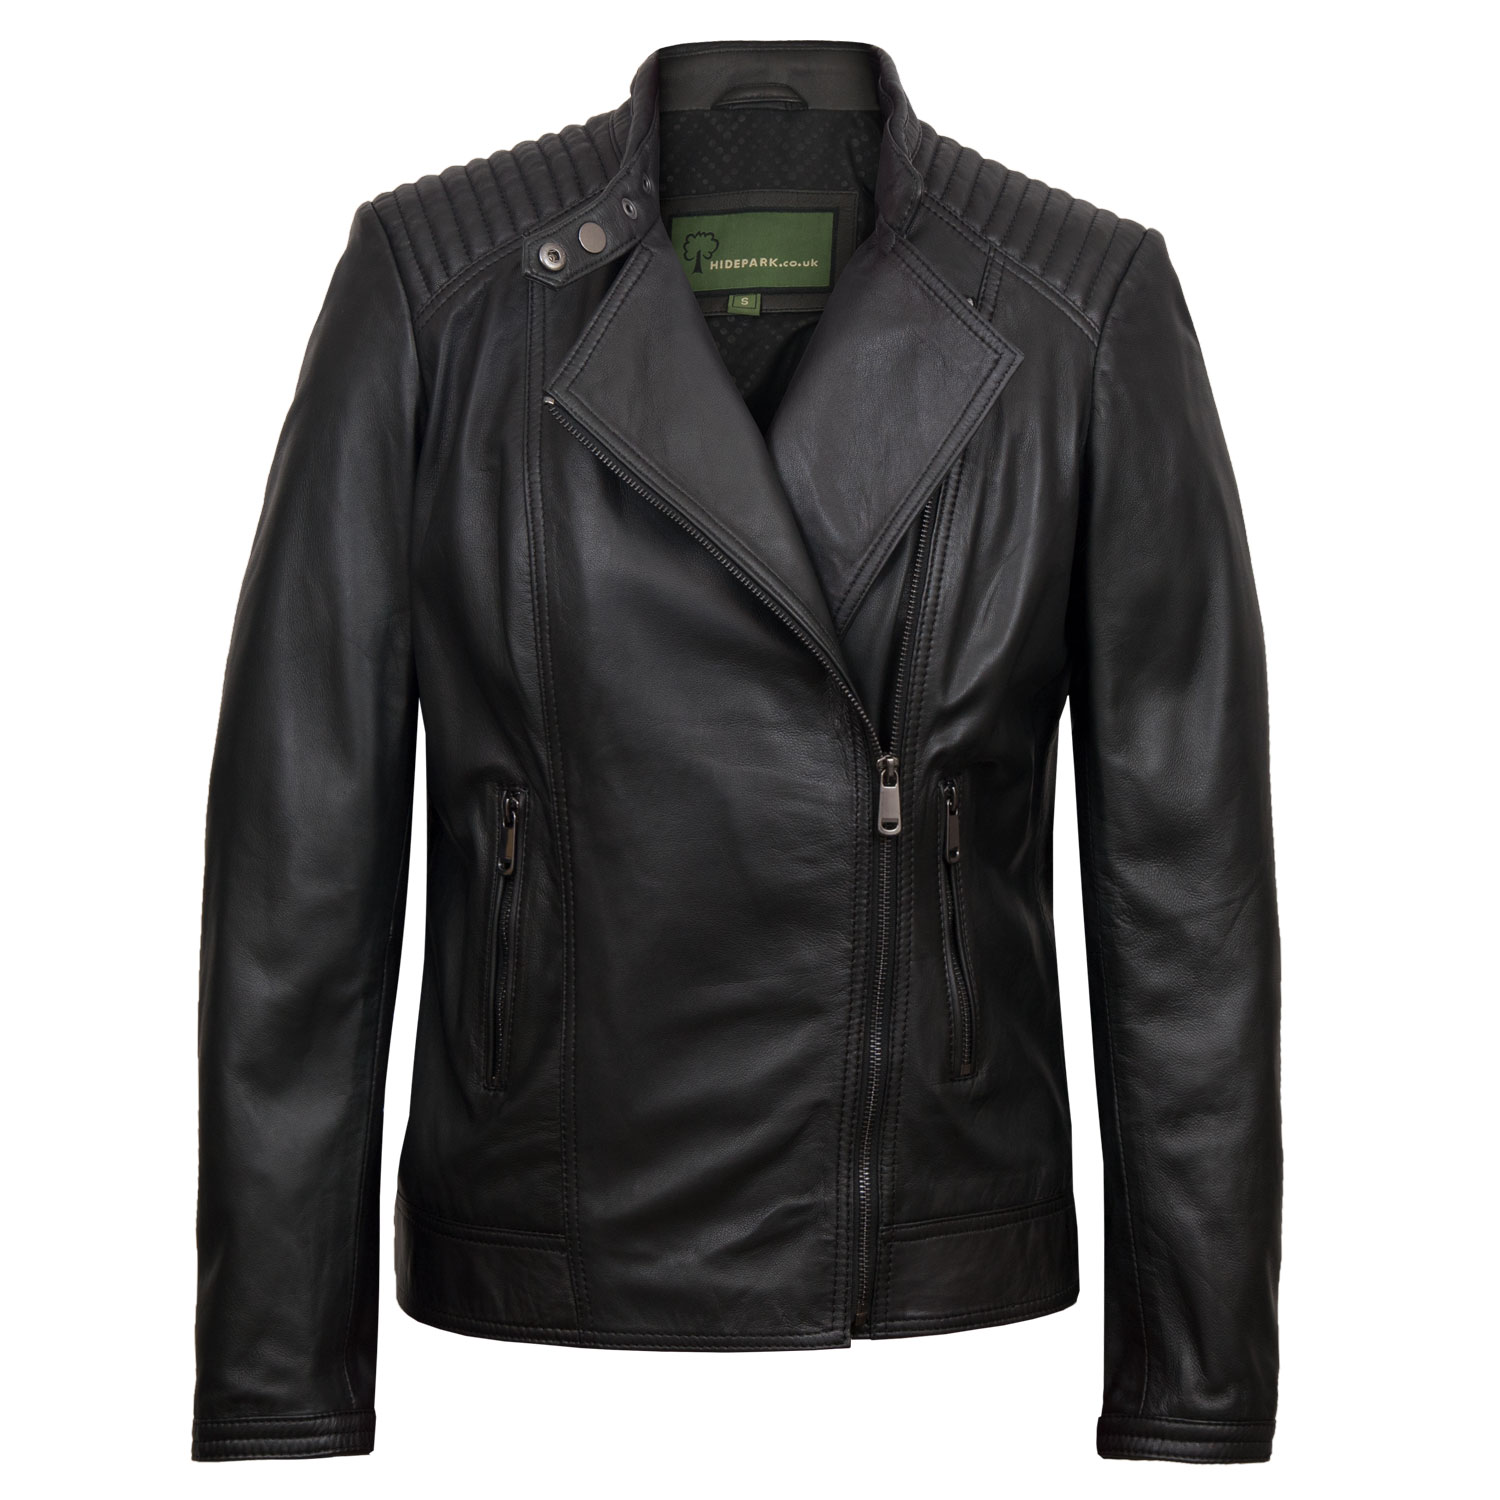 Women's Black Leather Biker Jacket: Britney